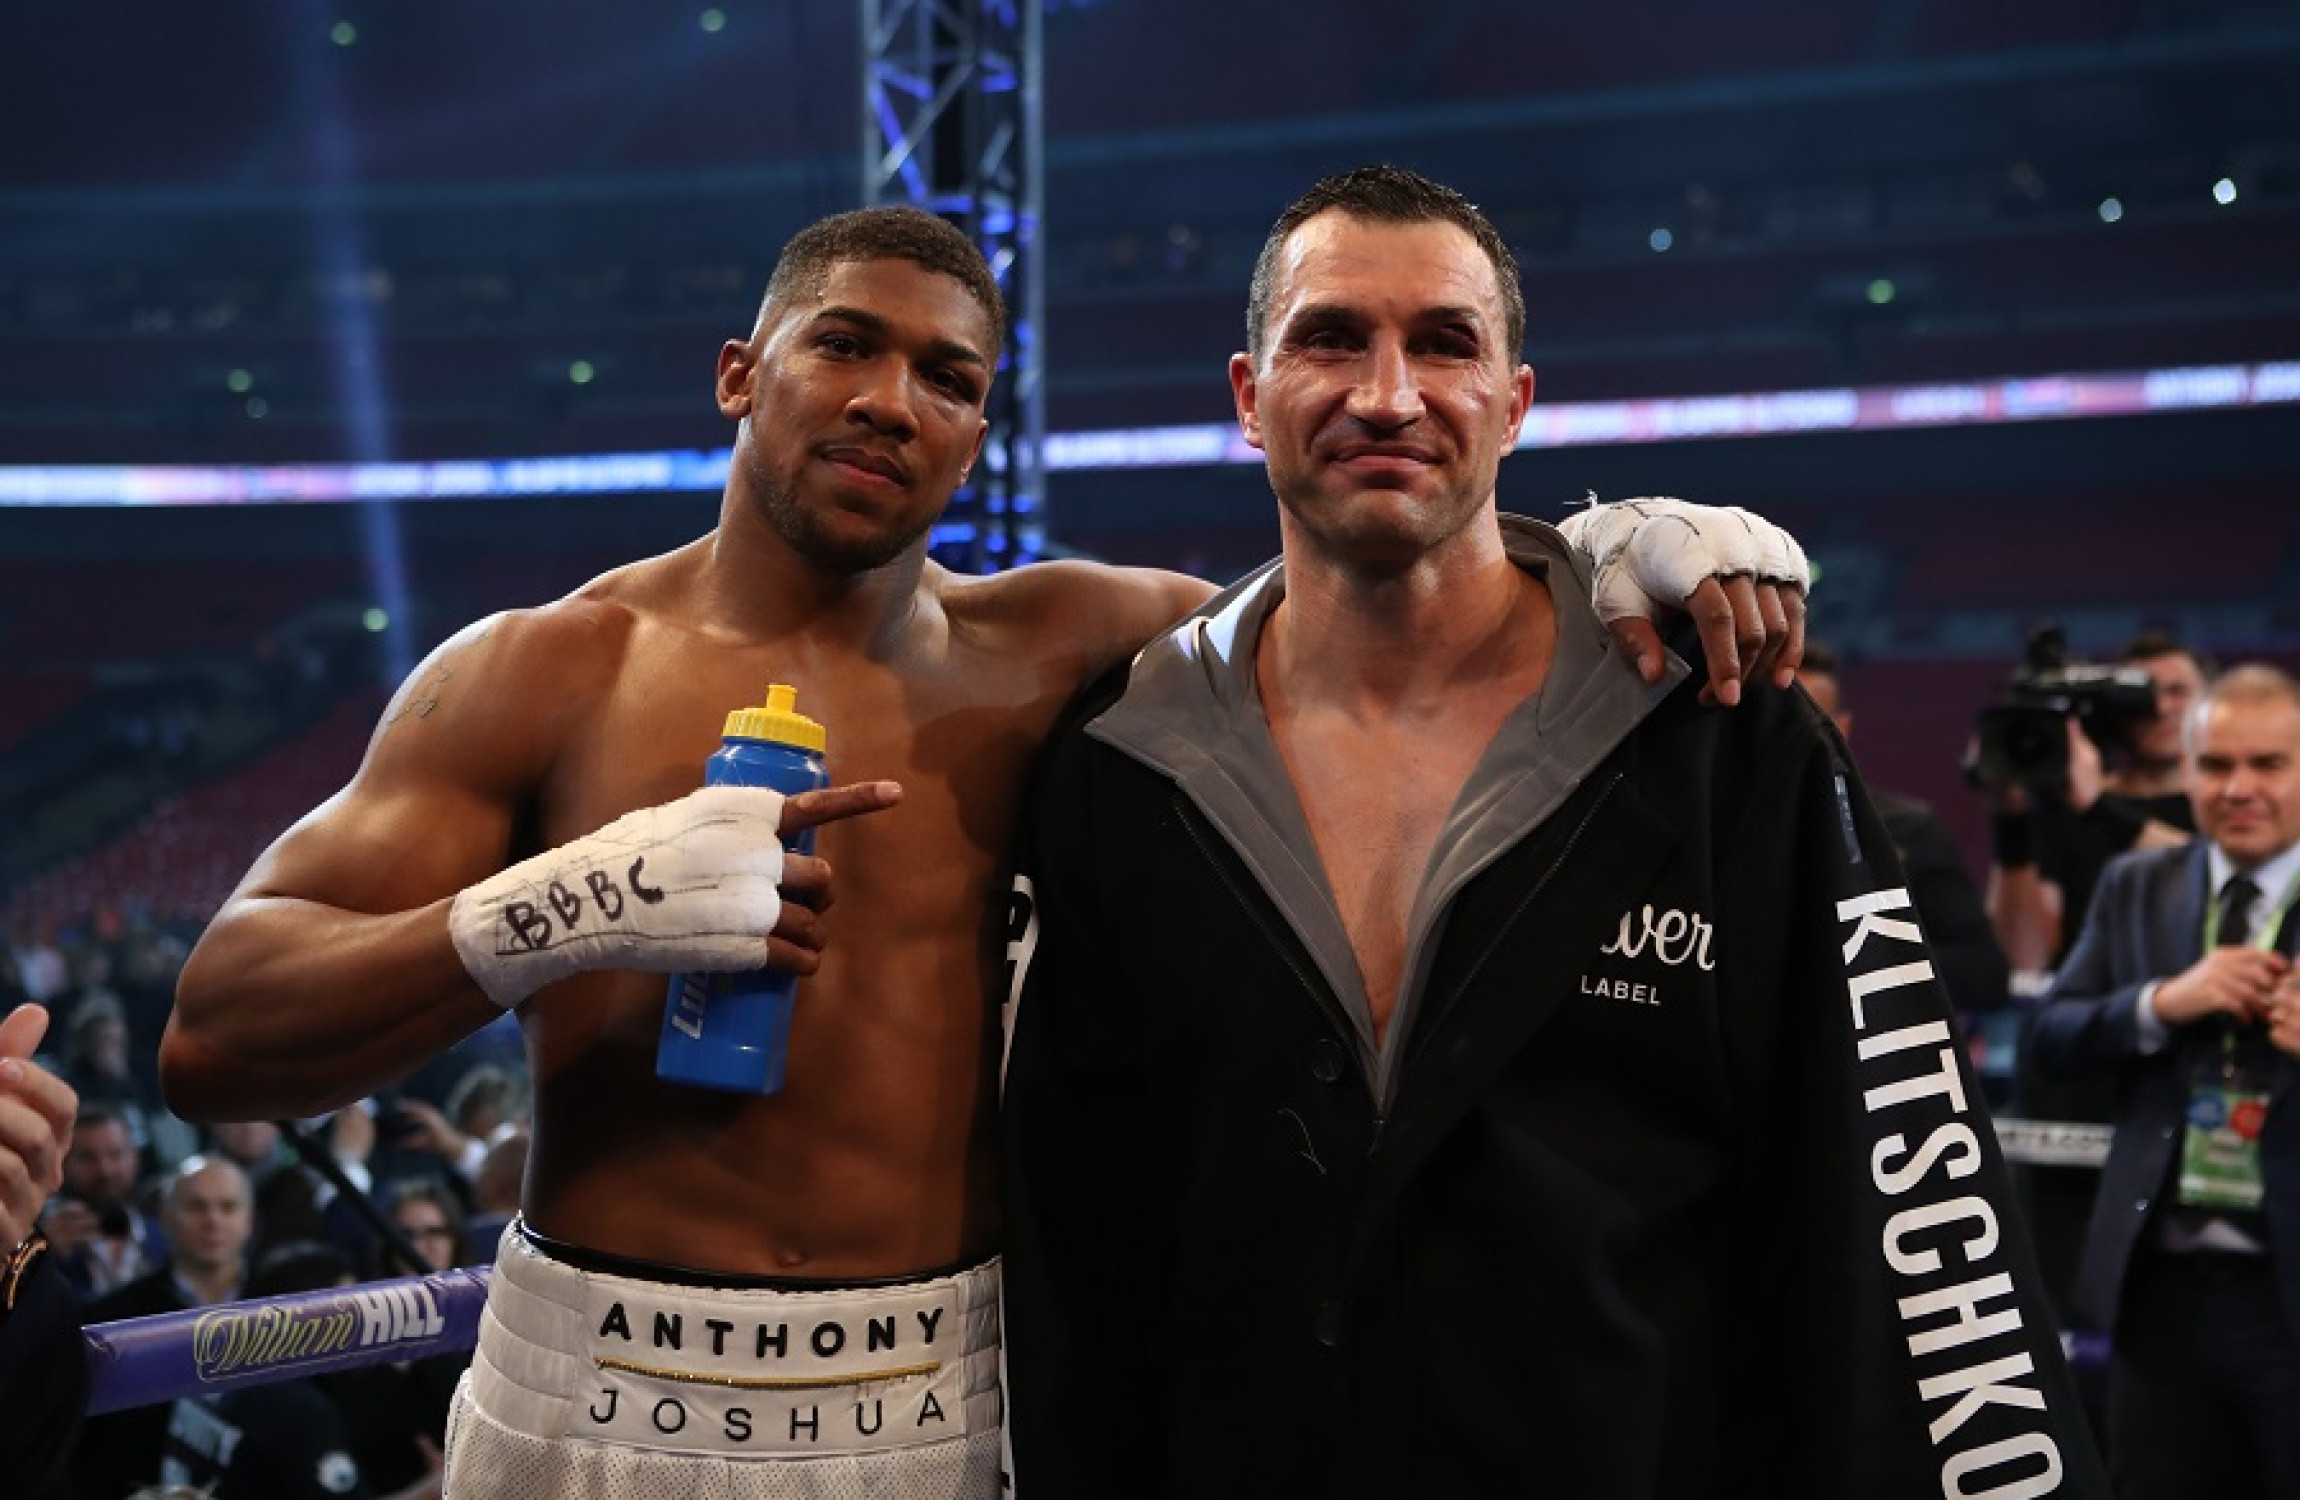 Anthony Joshua vs. Wladimir Klitschko rematch being targeted for November